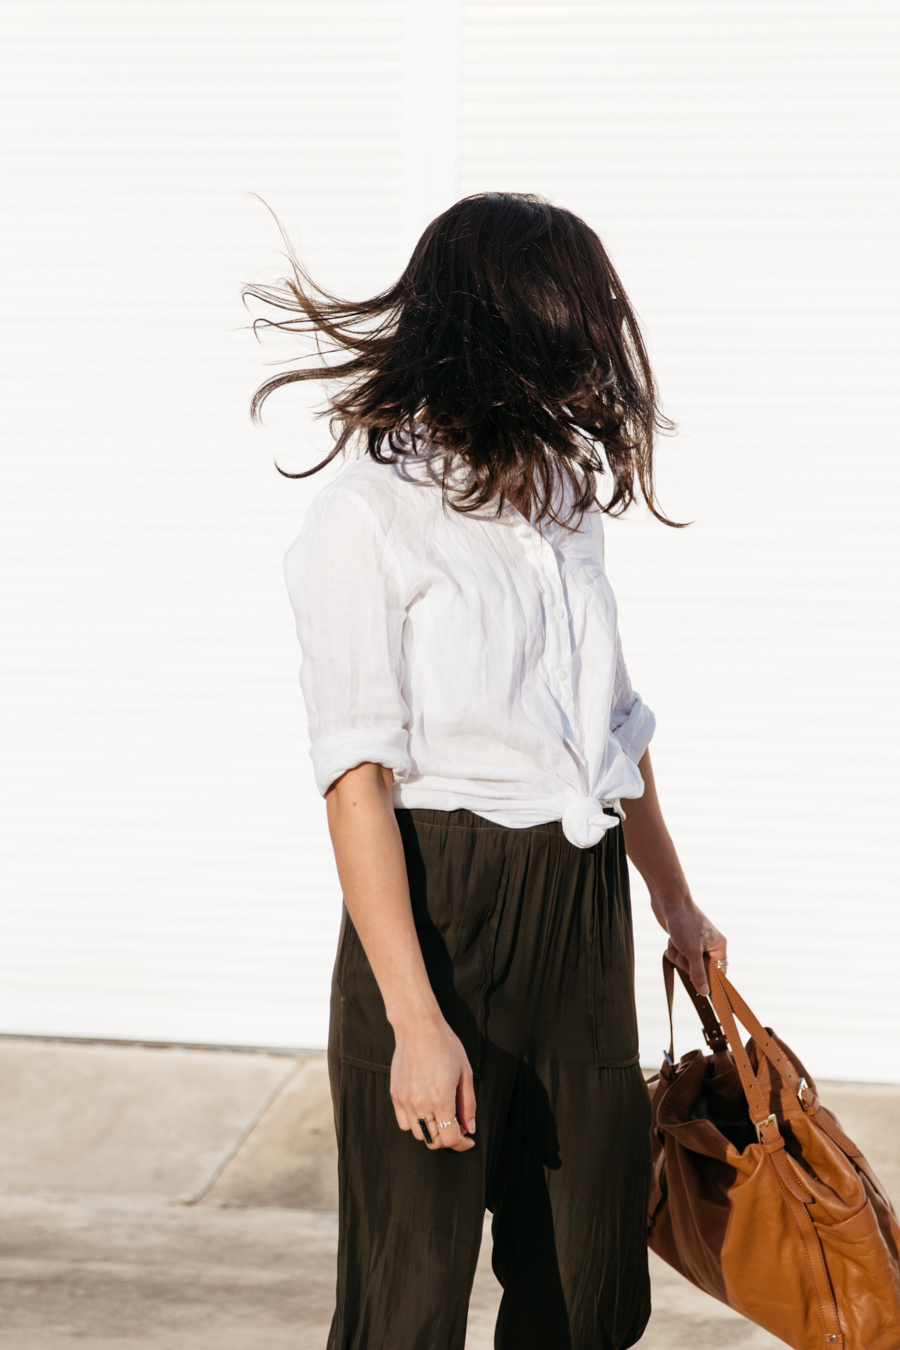 Knotted linen shirt outfit. Australian summer outfit.